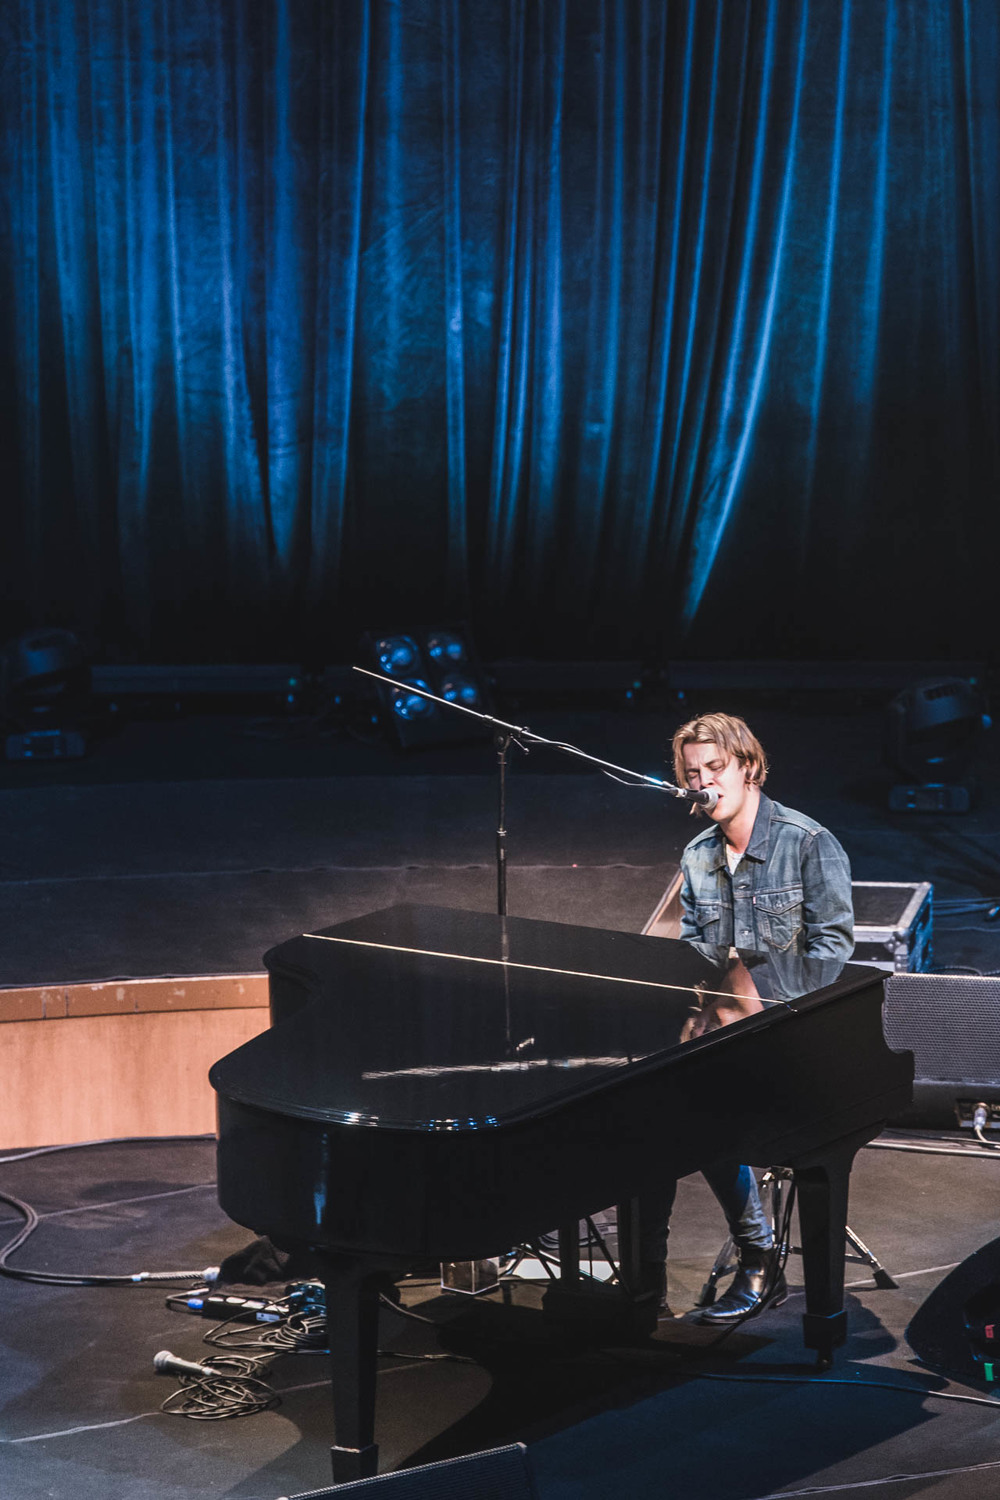 co-pop-tom-odell-wearecity-koeln-pramudiya-18.jpg